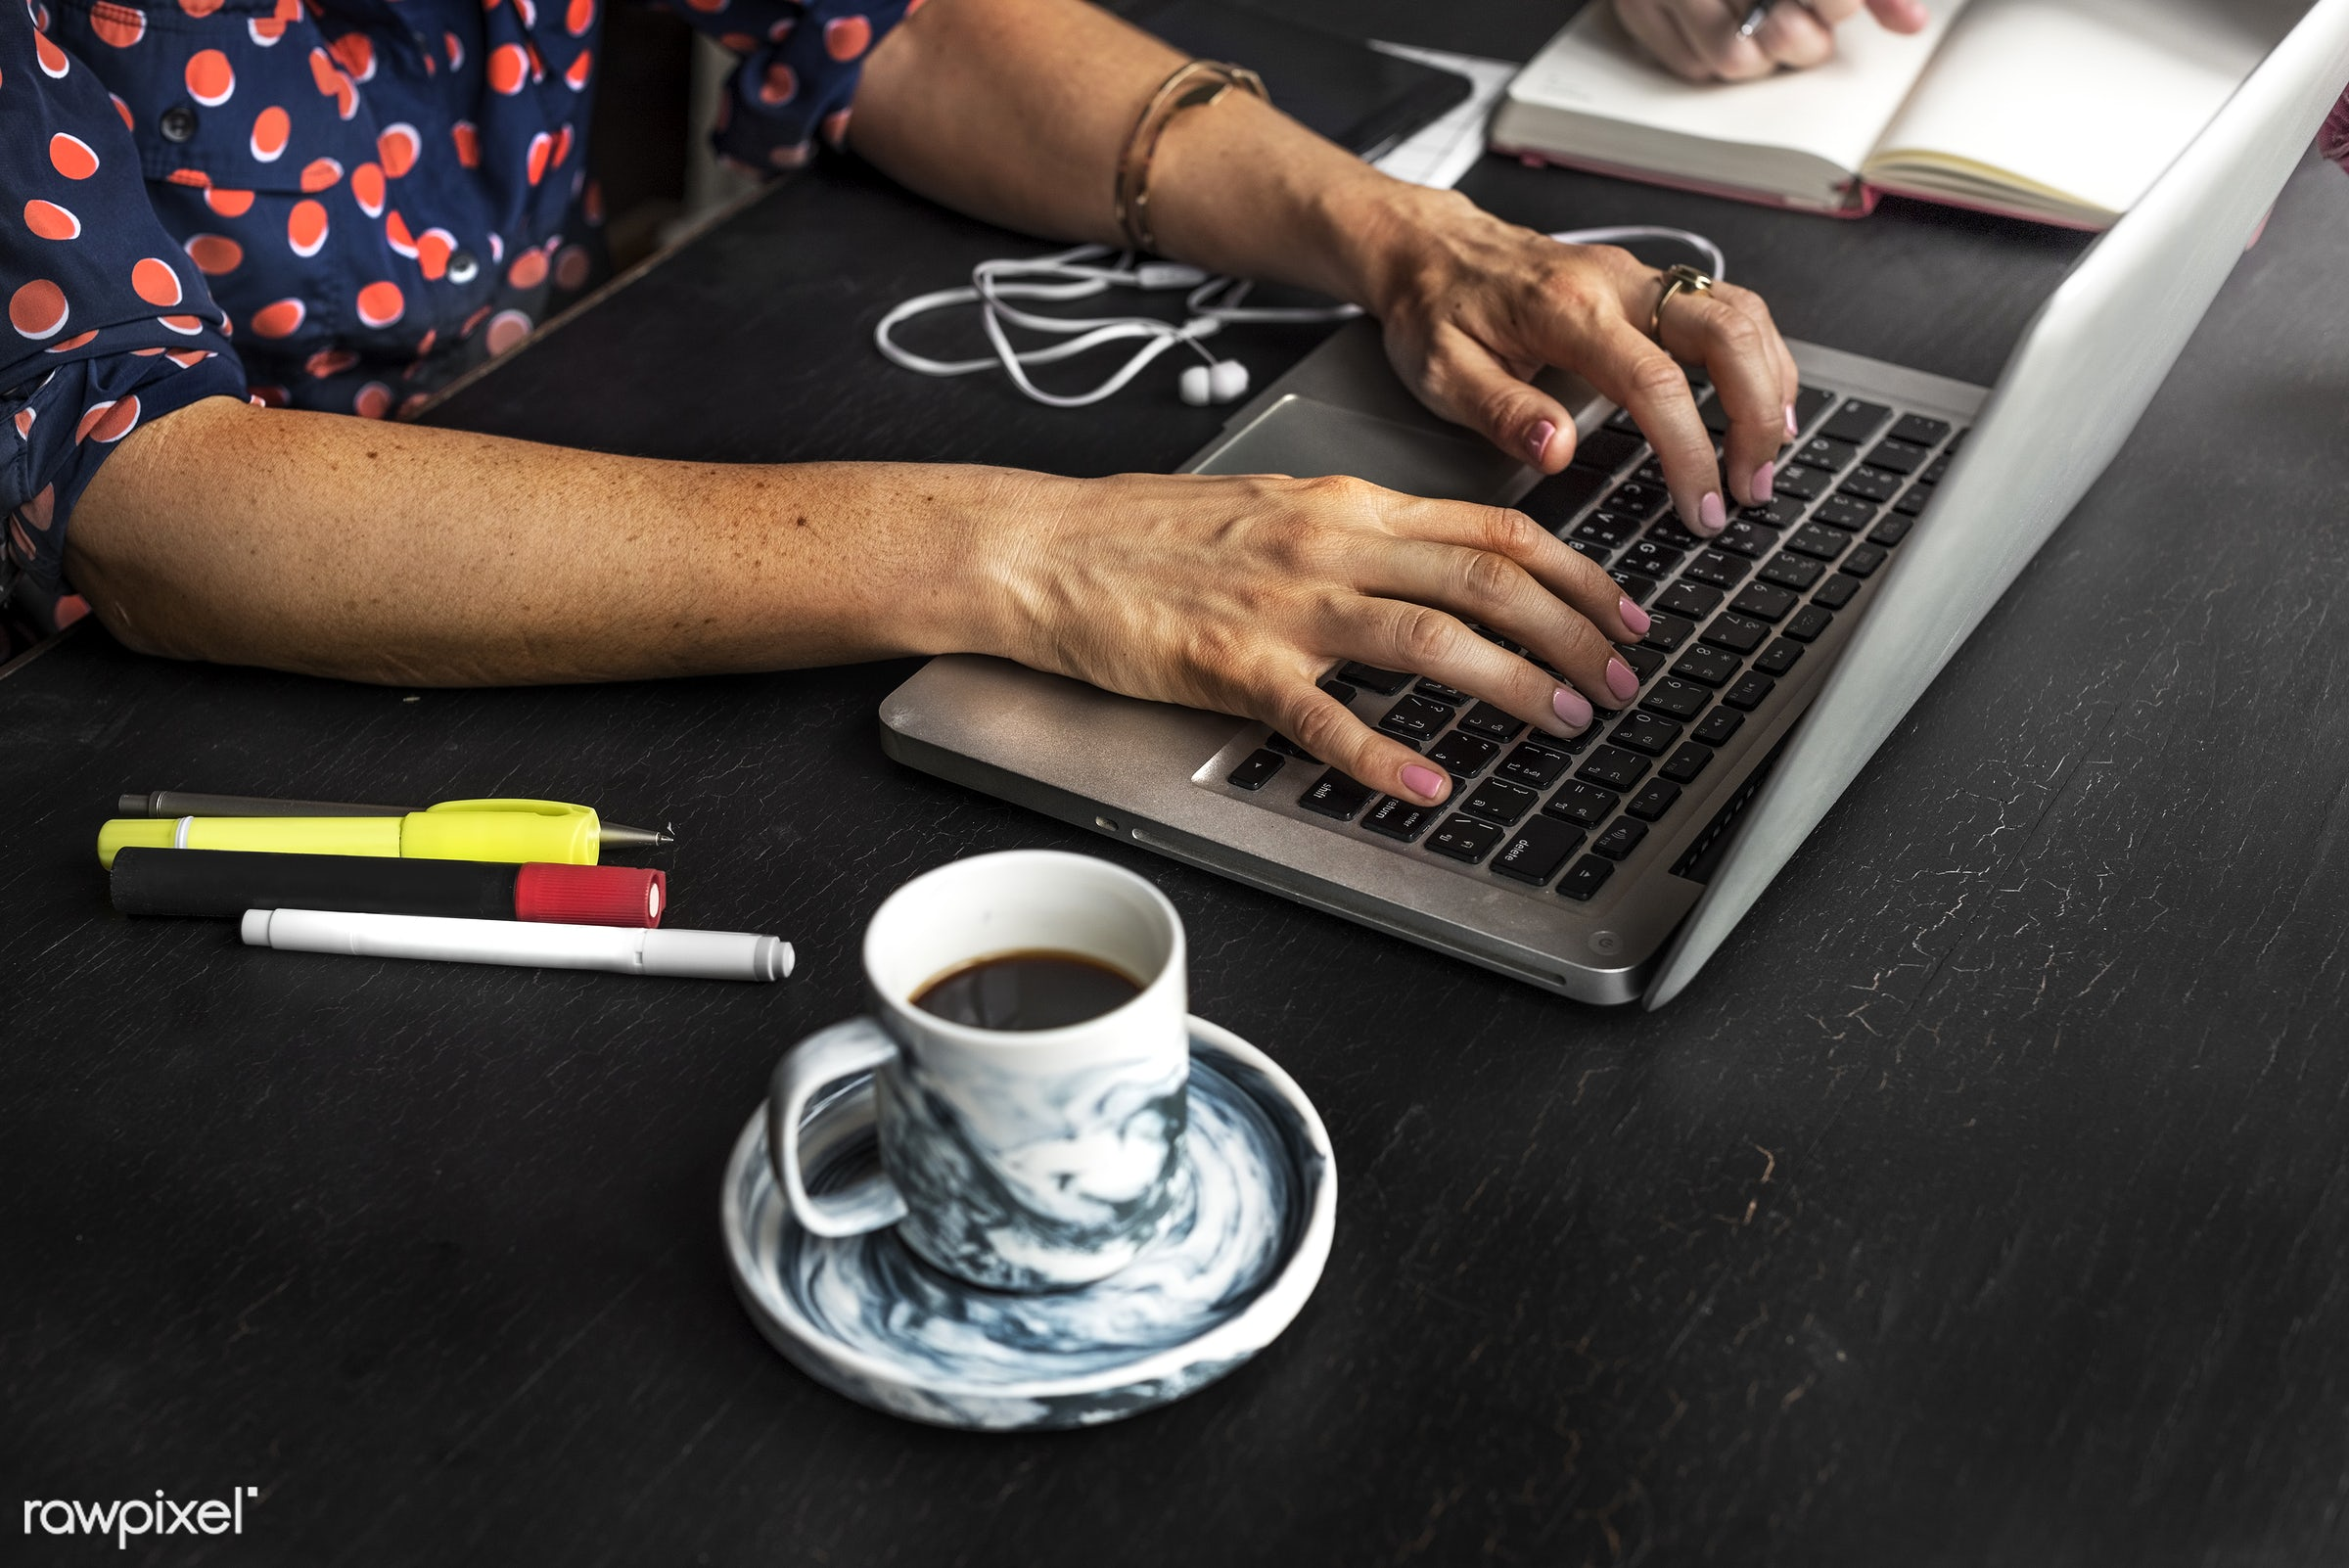 cup, person, technology, workspace, workplace, desk, type, people, pens, hands, search, woman, drink, laptop, typing,...